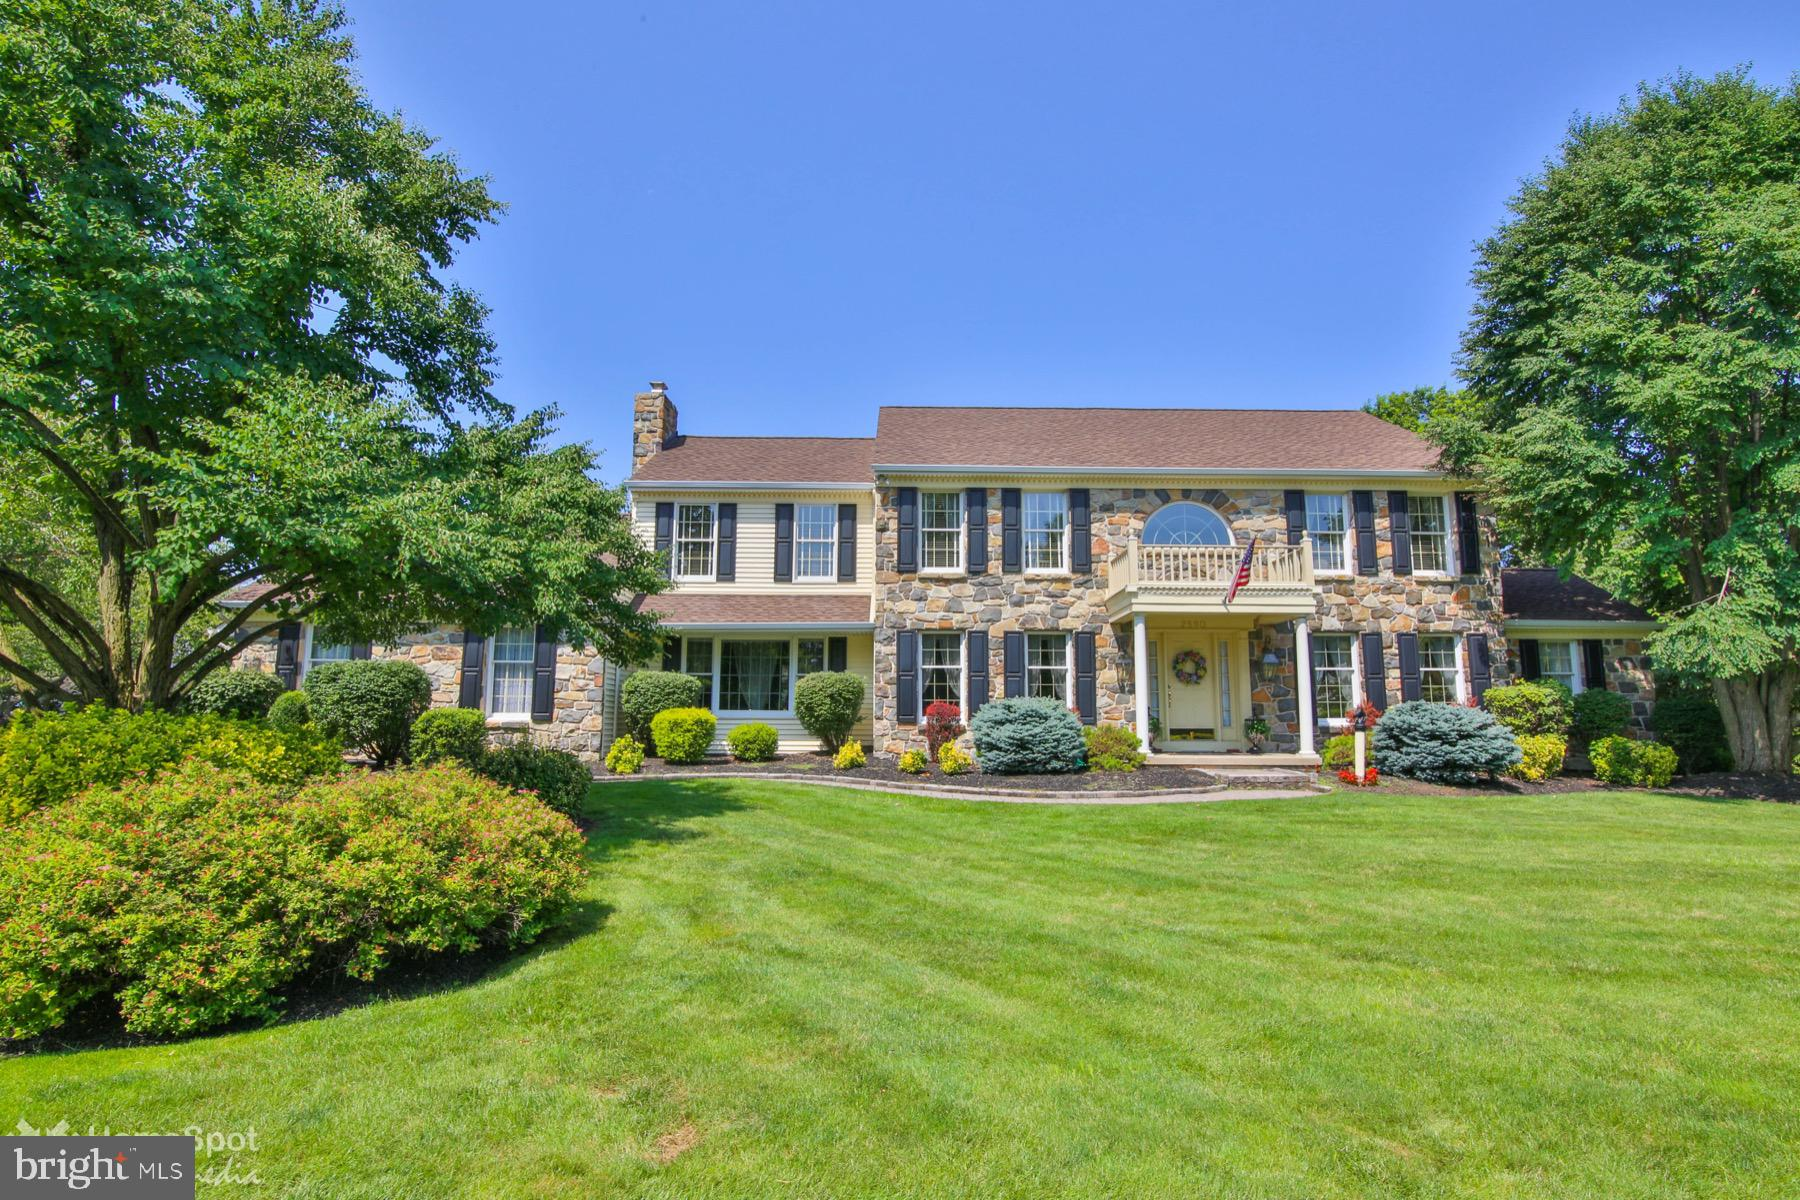 2590 RIVER ROCK DRIVE, MACUNGIE, PA 18062